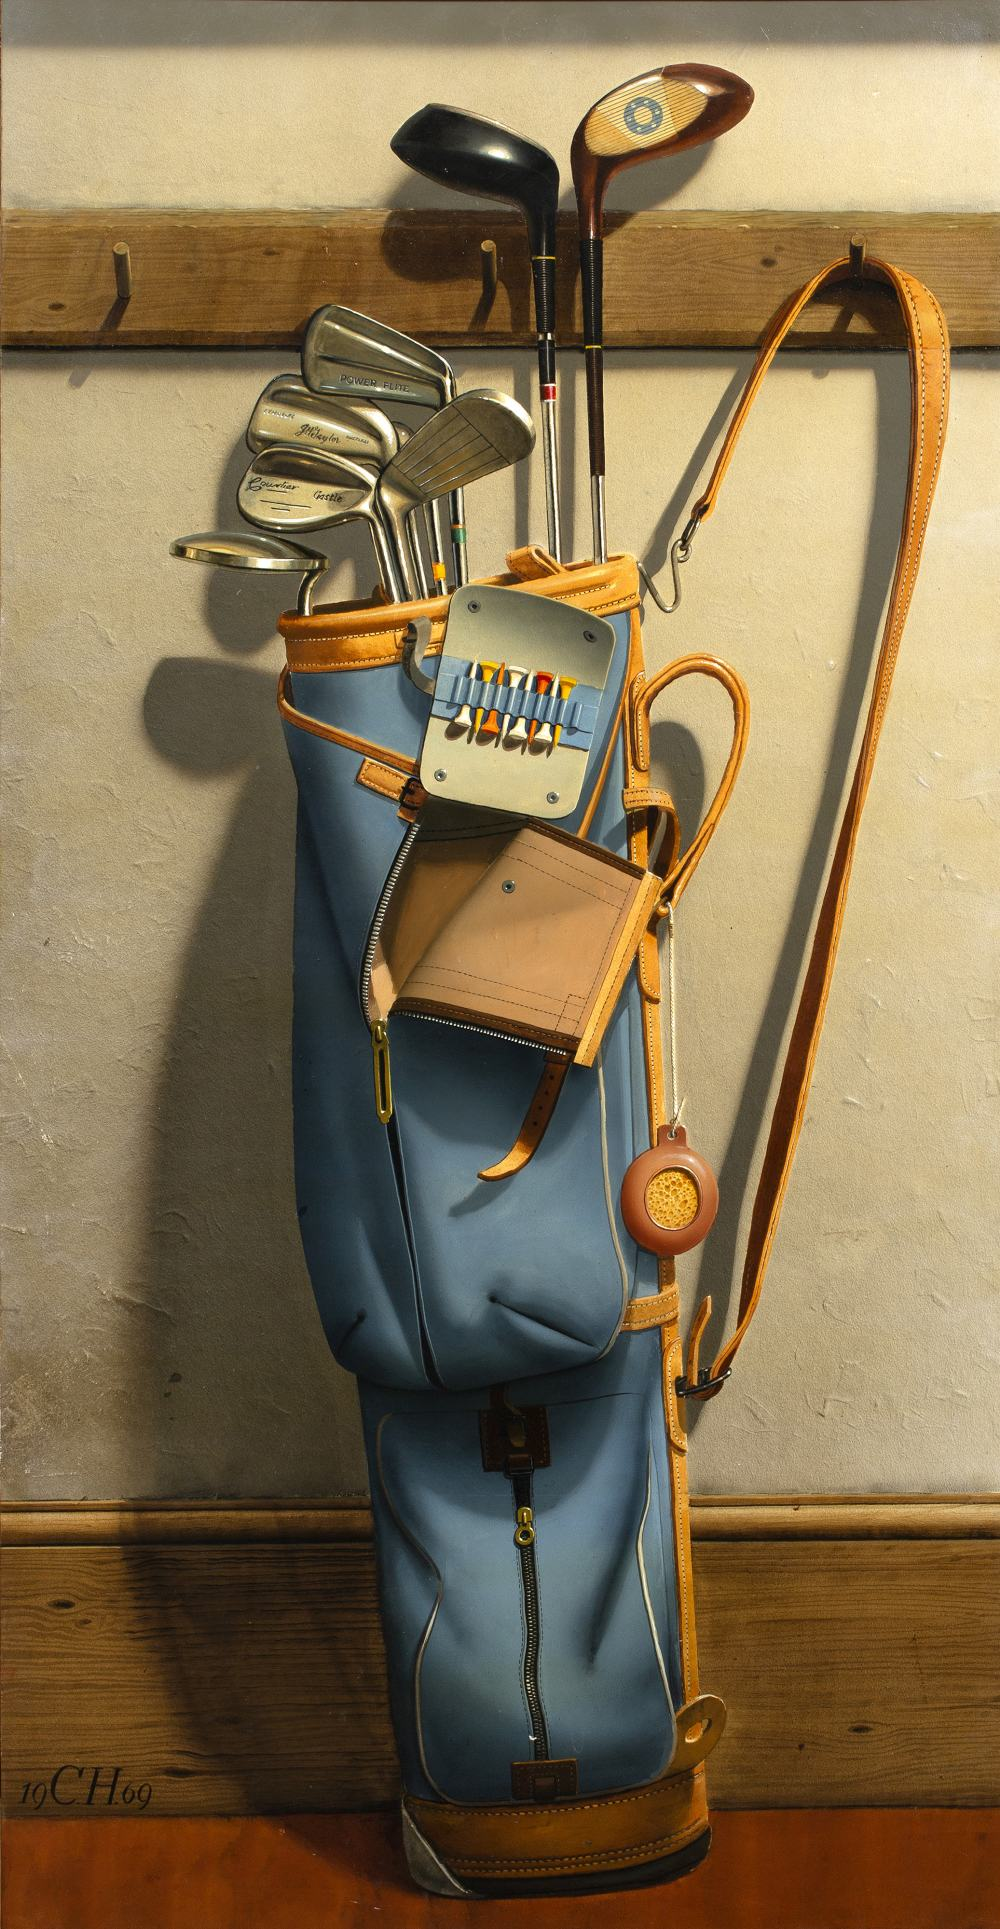 Lot 690 - Frederick Clifford Harrison (1901-1984) Golf clubs, 1969 monogrammed and dated (lower left) oil on